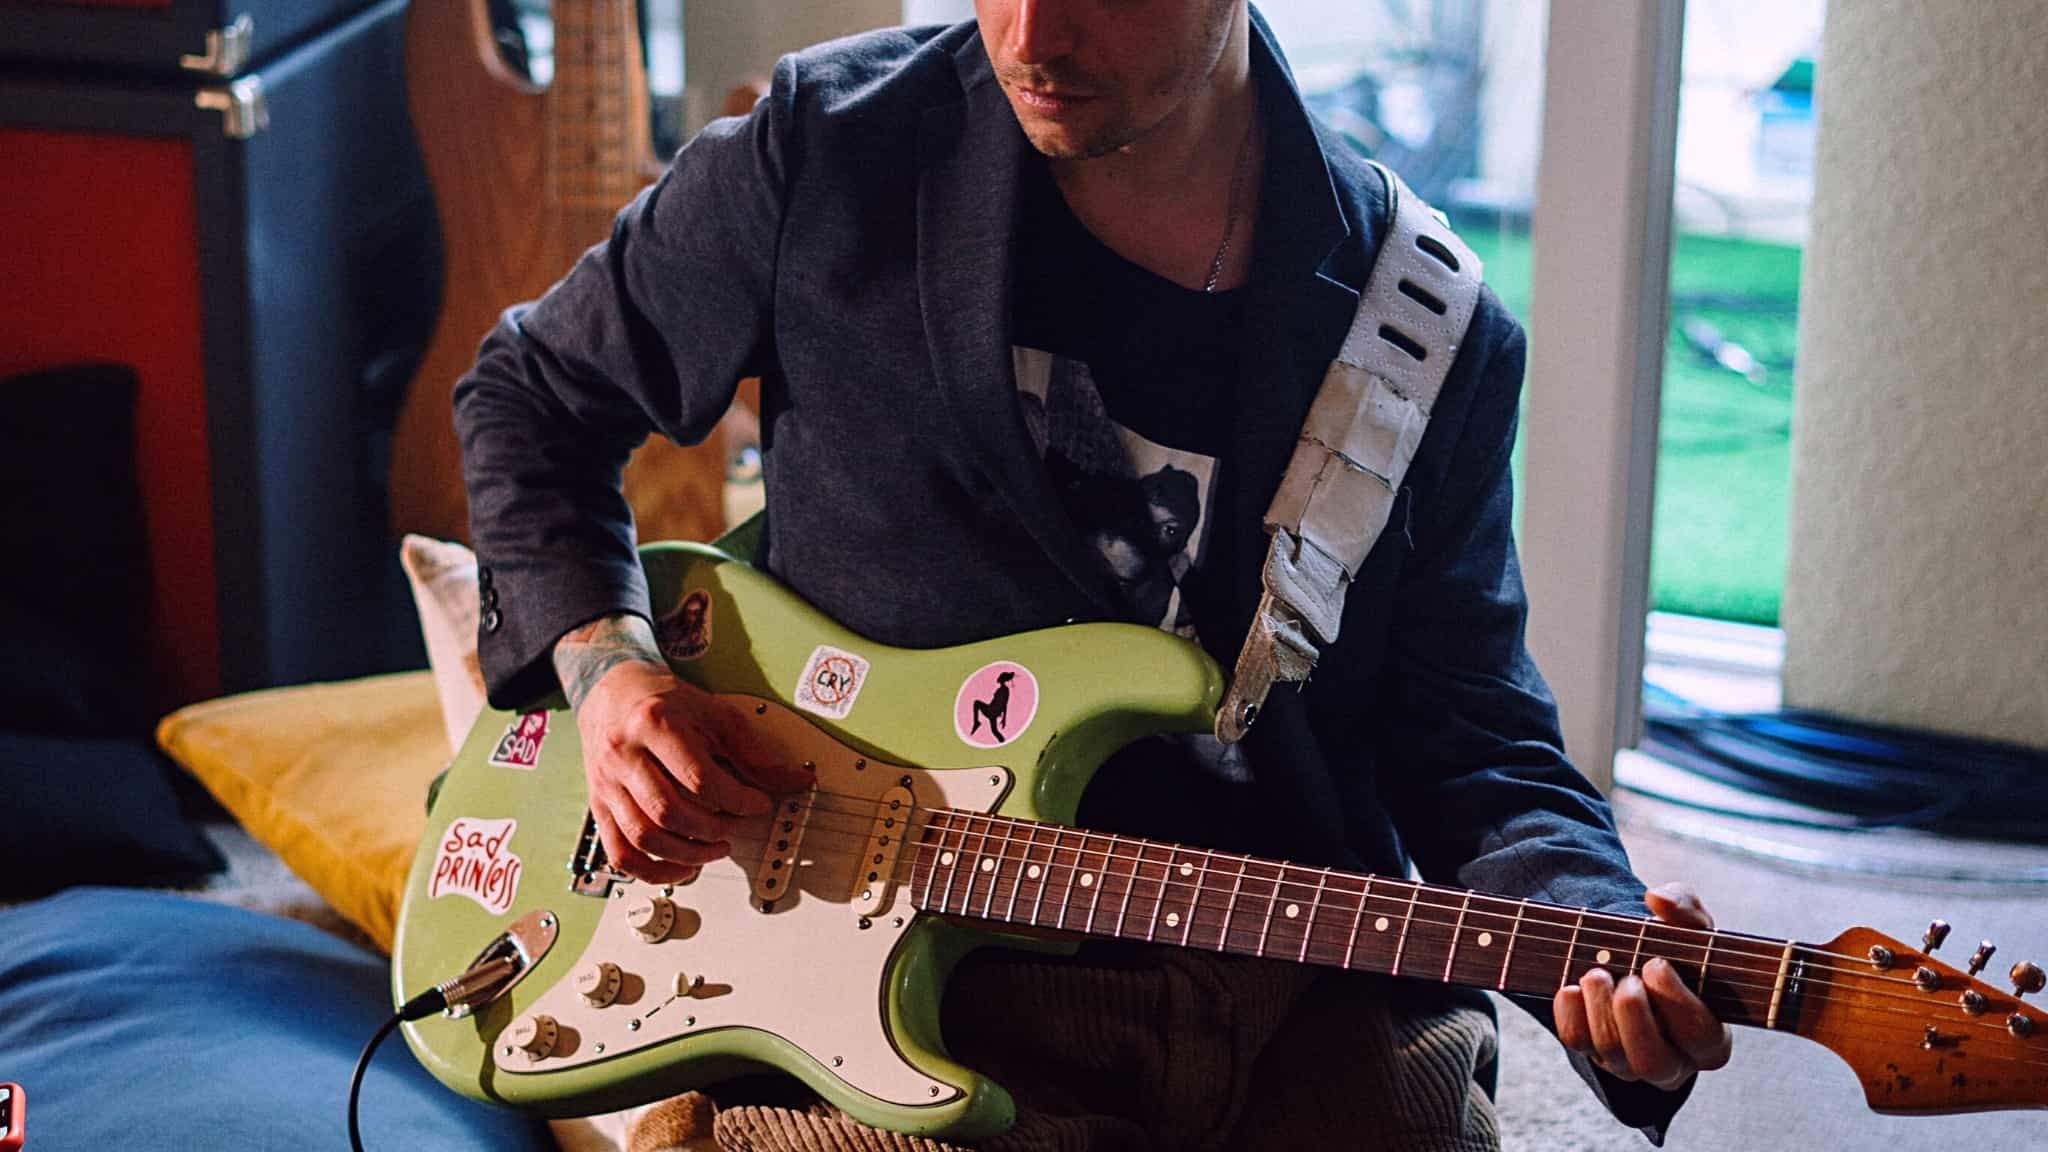 Ash wood in a stratocaster guitar